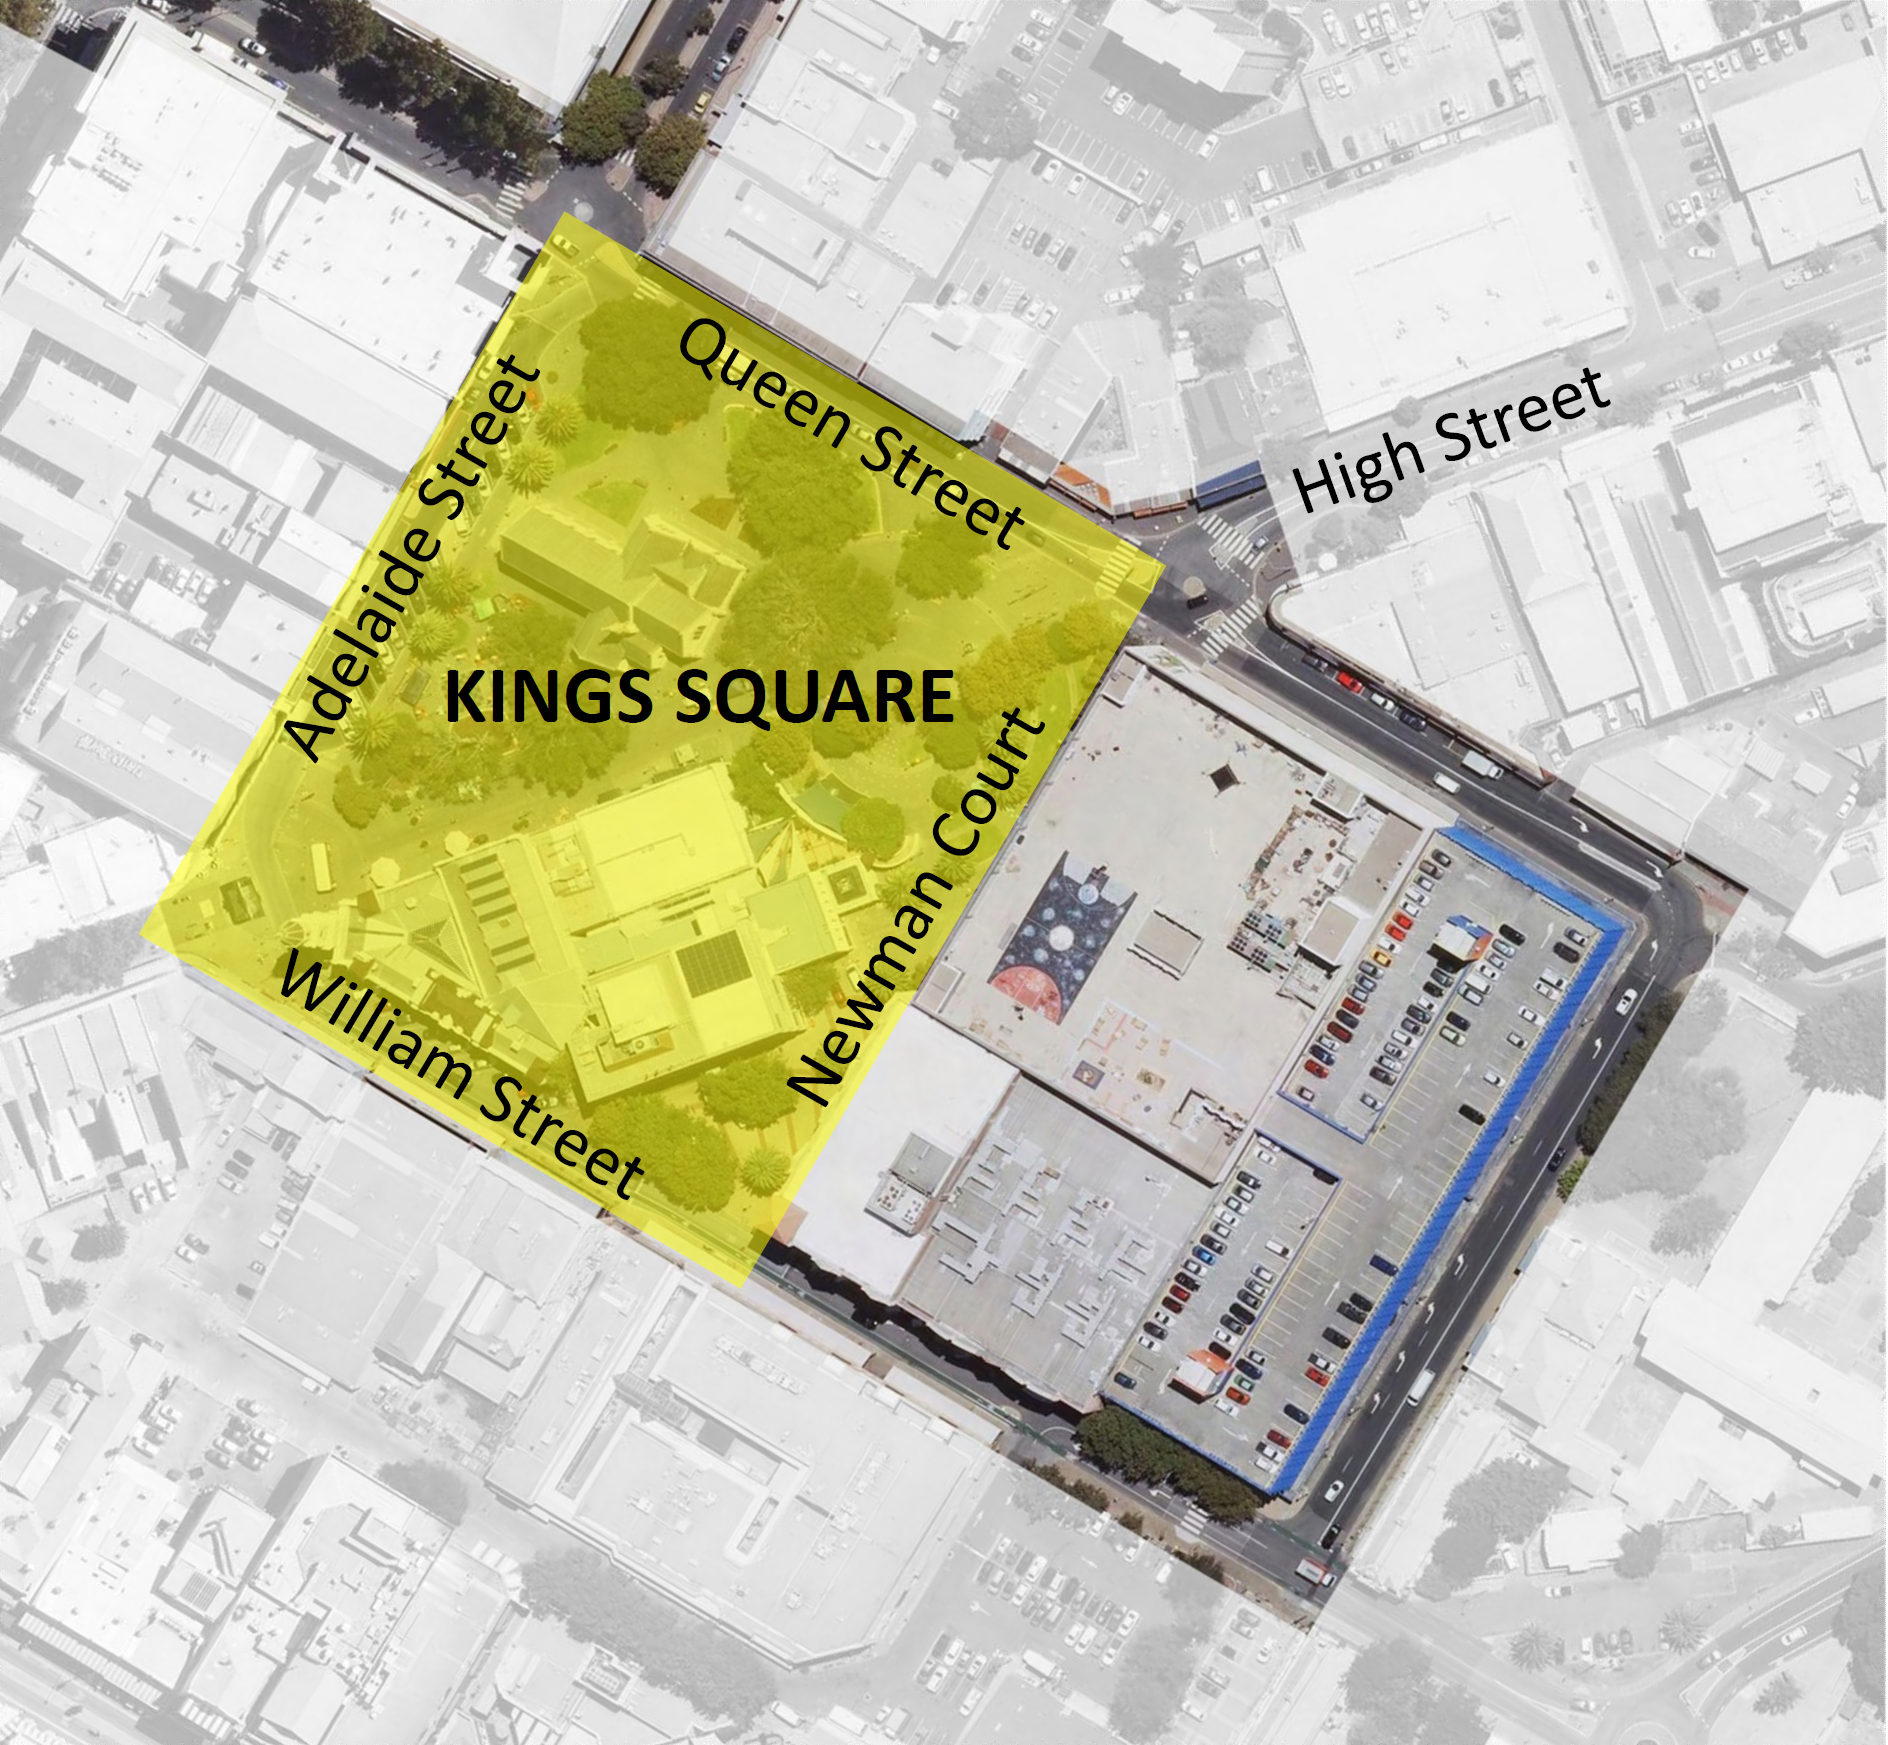 Map of the Kings Square area